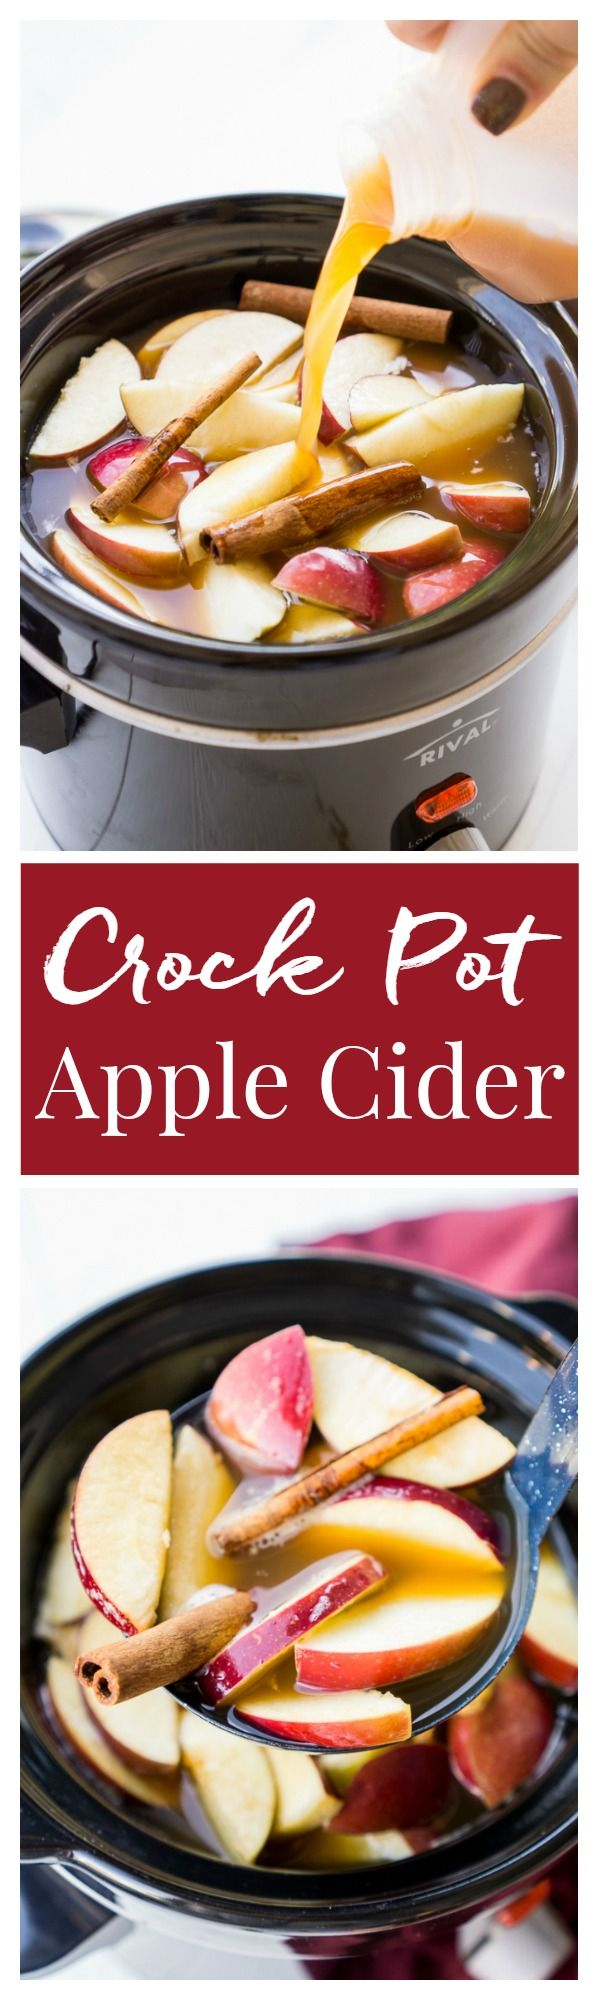 This Crock Pot Apple Cider will make entertaining a breeze this holiday season! Seasoned with cinnamon, apples, and ginger, this cider can simmer in the crock all night long! Keep the spiced rum on th (Apple Recipes Slow Cooker)